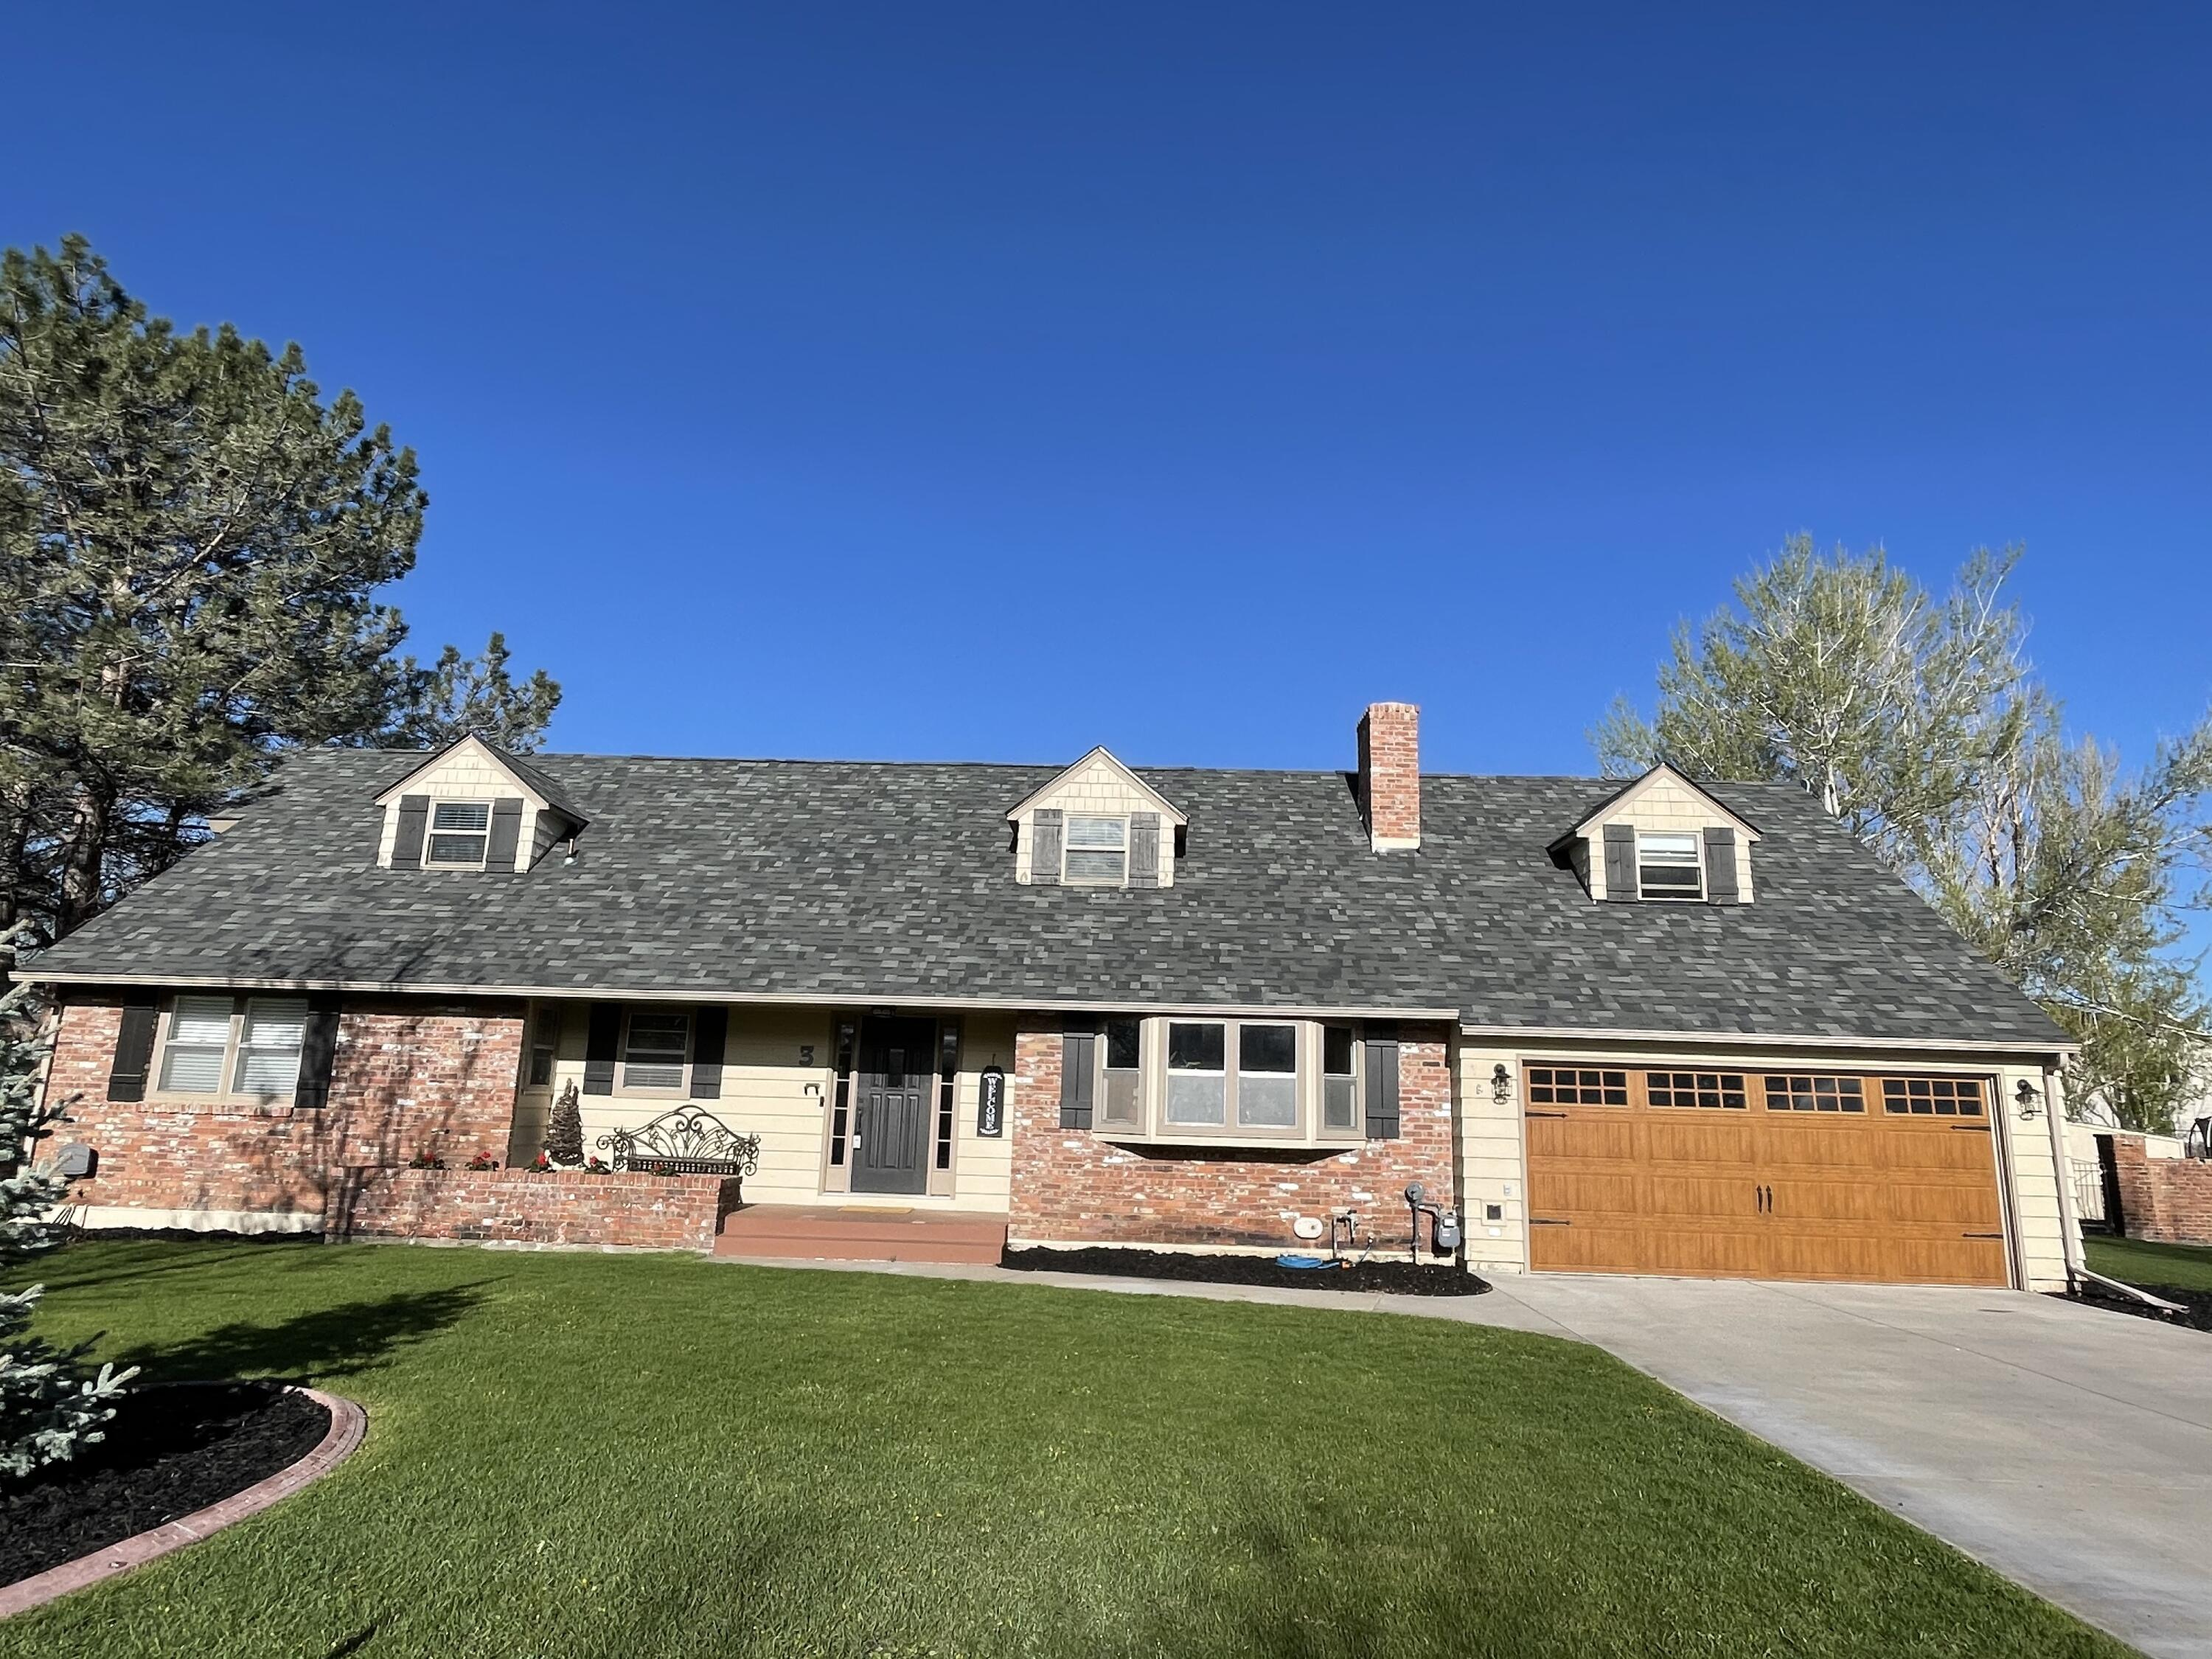 Located in the desirable fox farm area of Great Falls, this 5 bedroom +office, 4 bath home has been tastefully updated in the last year!  It has a new roof (2020), new furnace and AC system, all new light fixtures, faucets, showers, tankless water heater, custom bookcases, blinds, nest thermostats and has been repainted from top to bottom inside.The bedroom on the main floor has its' own bath. There is an additional full bath for guests in the hall.  The four generous bedrooms upstairs all have so much extra storage, look closely!The spacious backyard has plenty of grass area, a playset and a low maintenance POOL!  The 5 foot brick fence around the property is very stately but the additional fence around the pool adds safety and privacy.Don't miss this fabulous property!